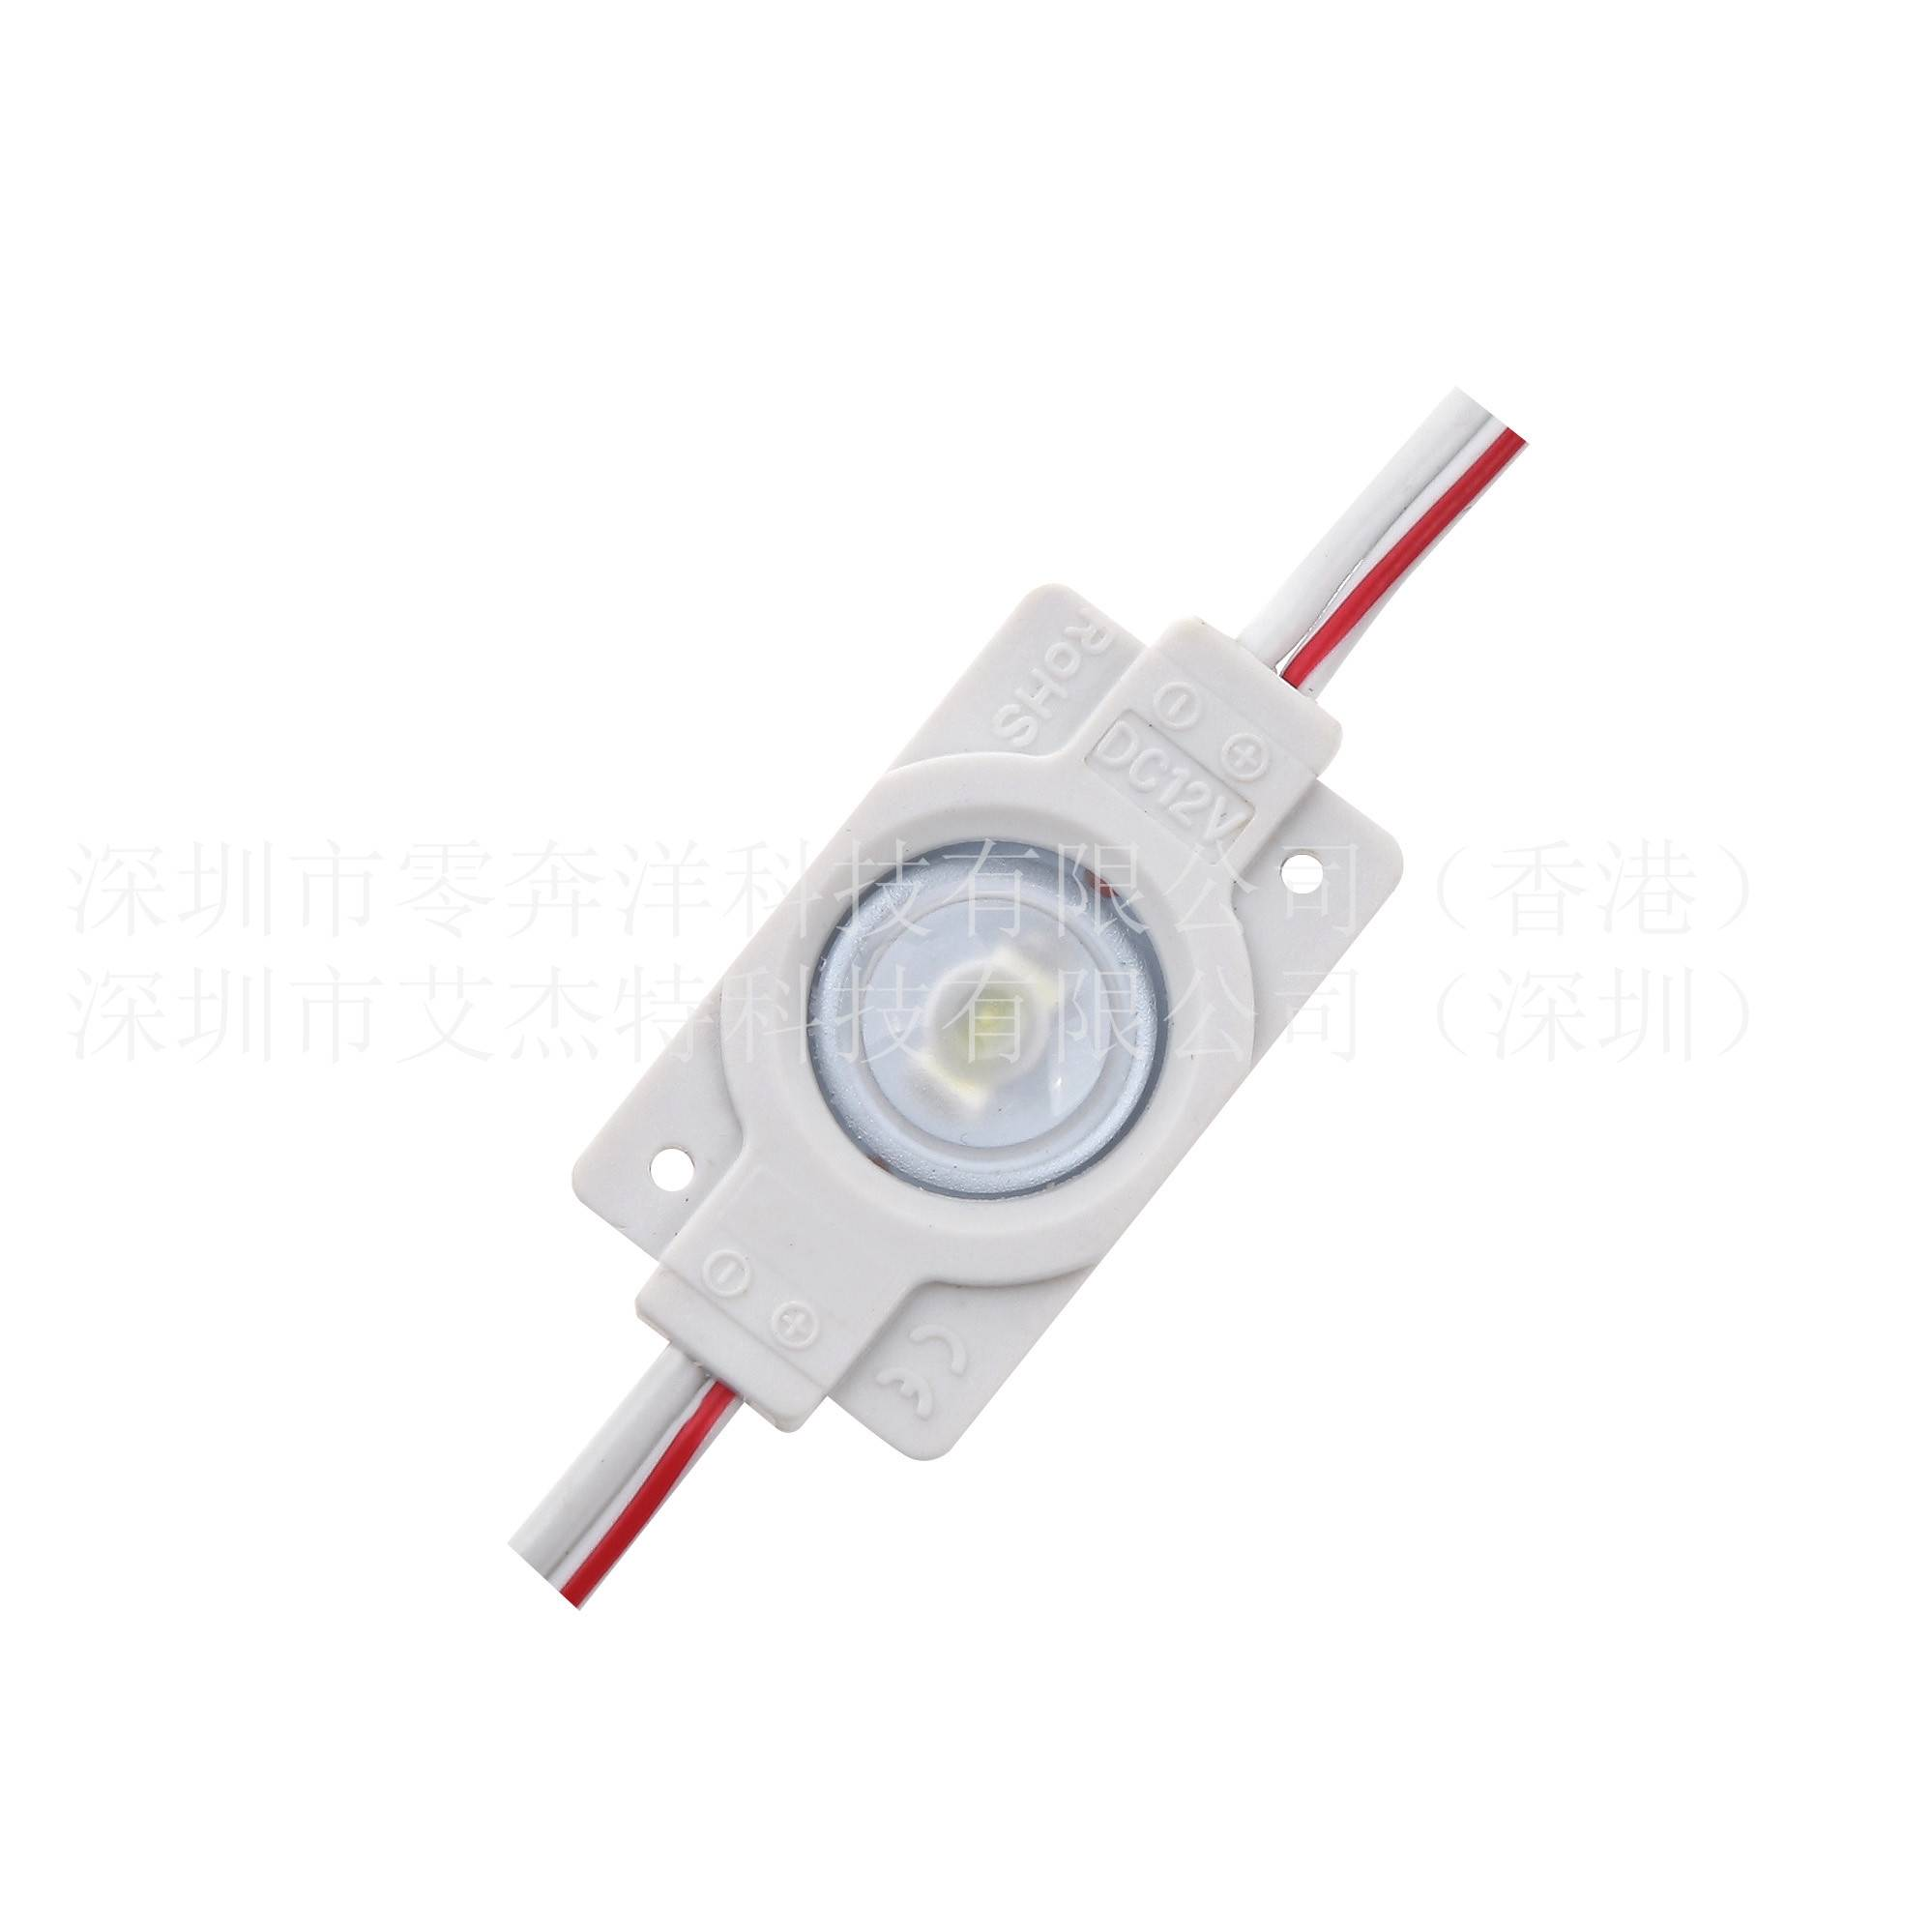 samsung led module high power led module lens injection module dc12v 0.6w